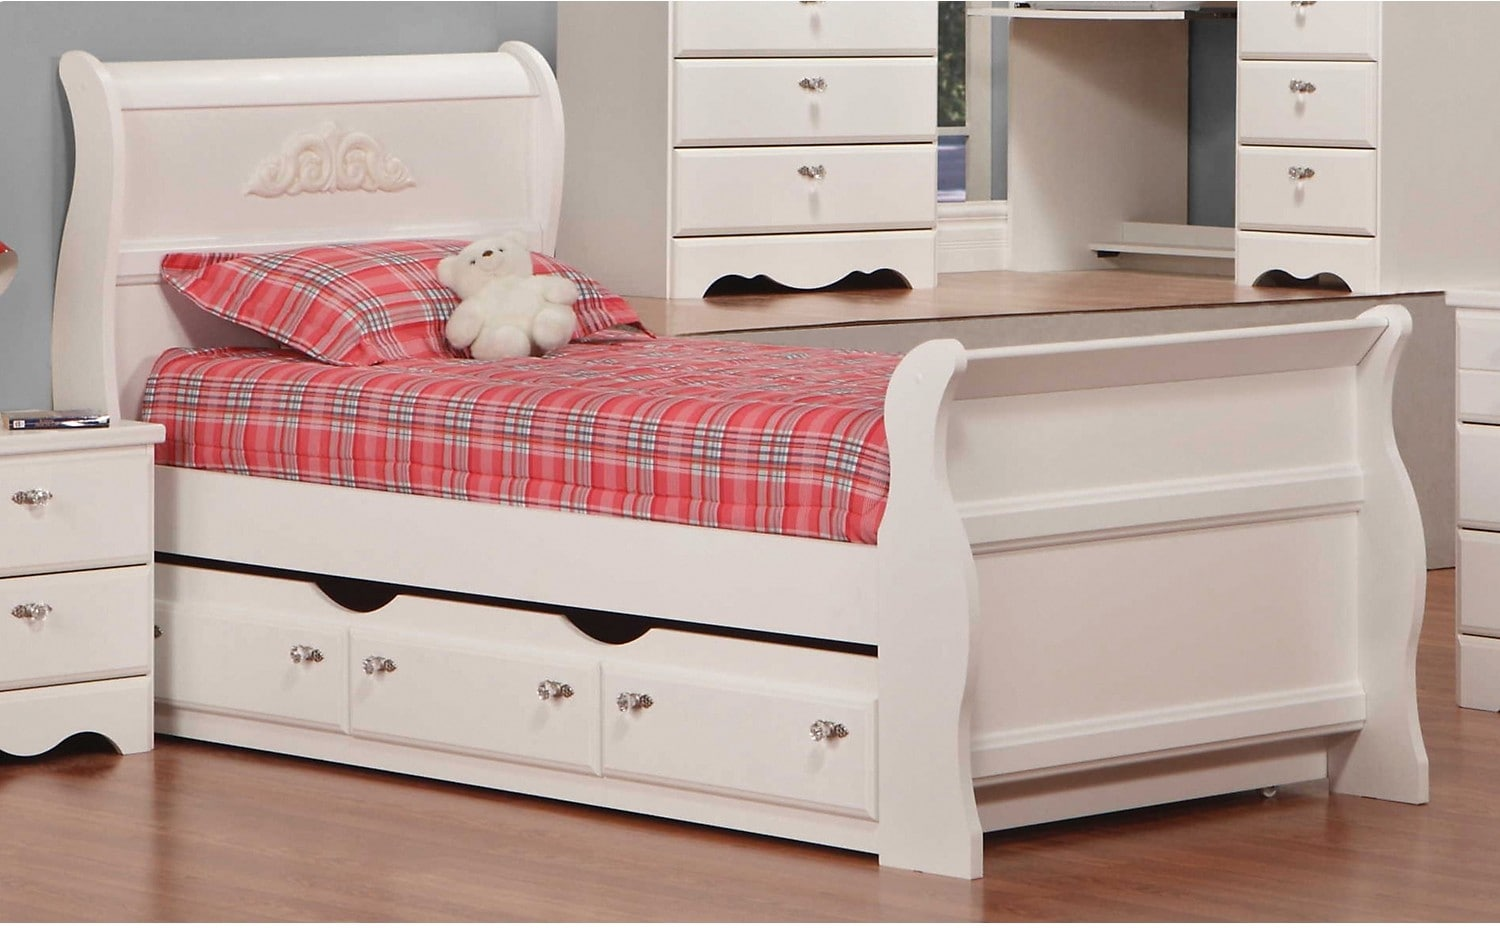 diamond dreams twin sleigh bed w trundle the brick 11937 | 336664 fit inside 576 576 composite to center center 576 576 background color white